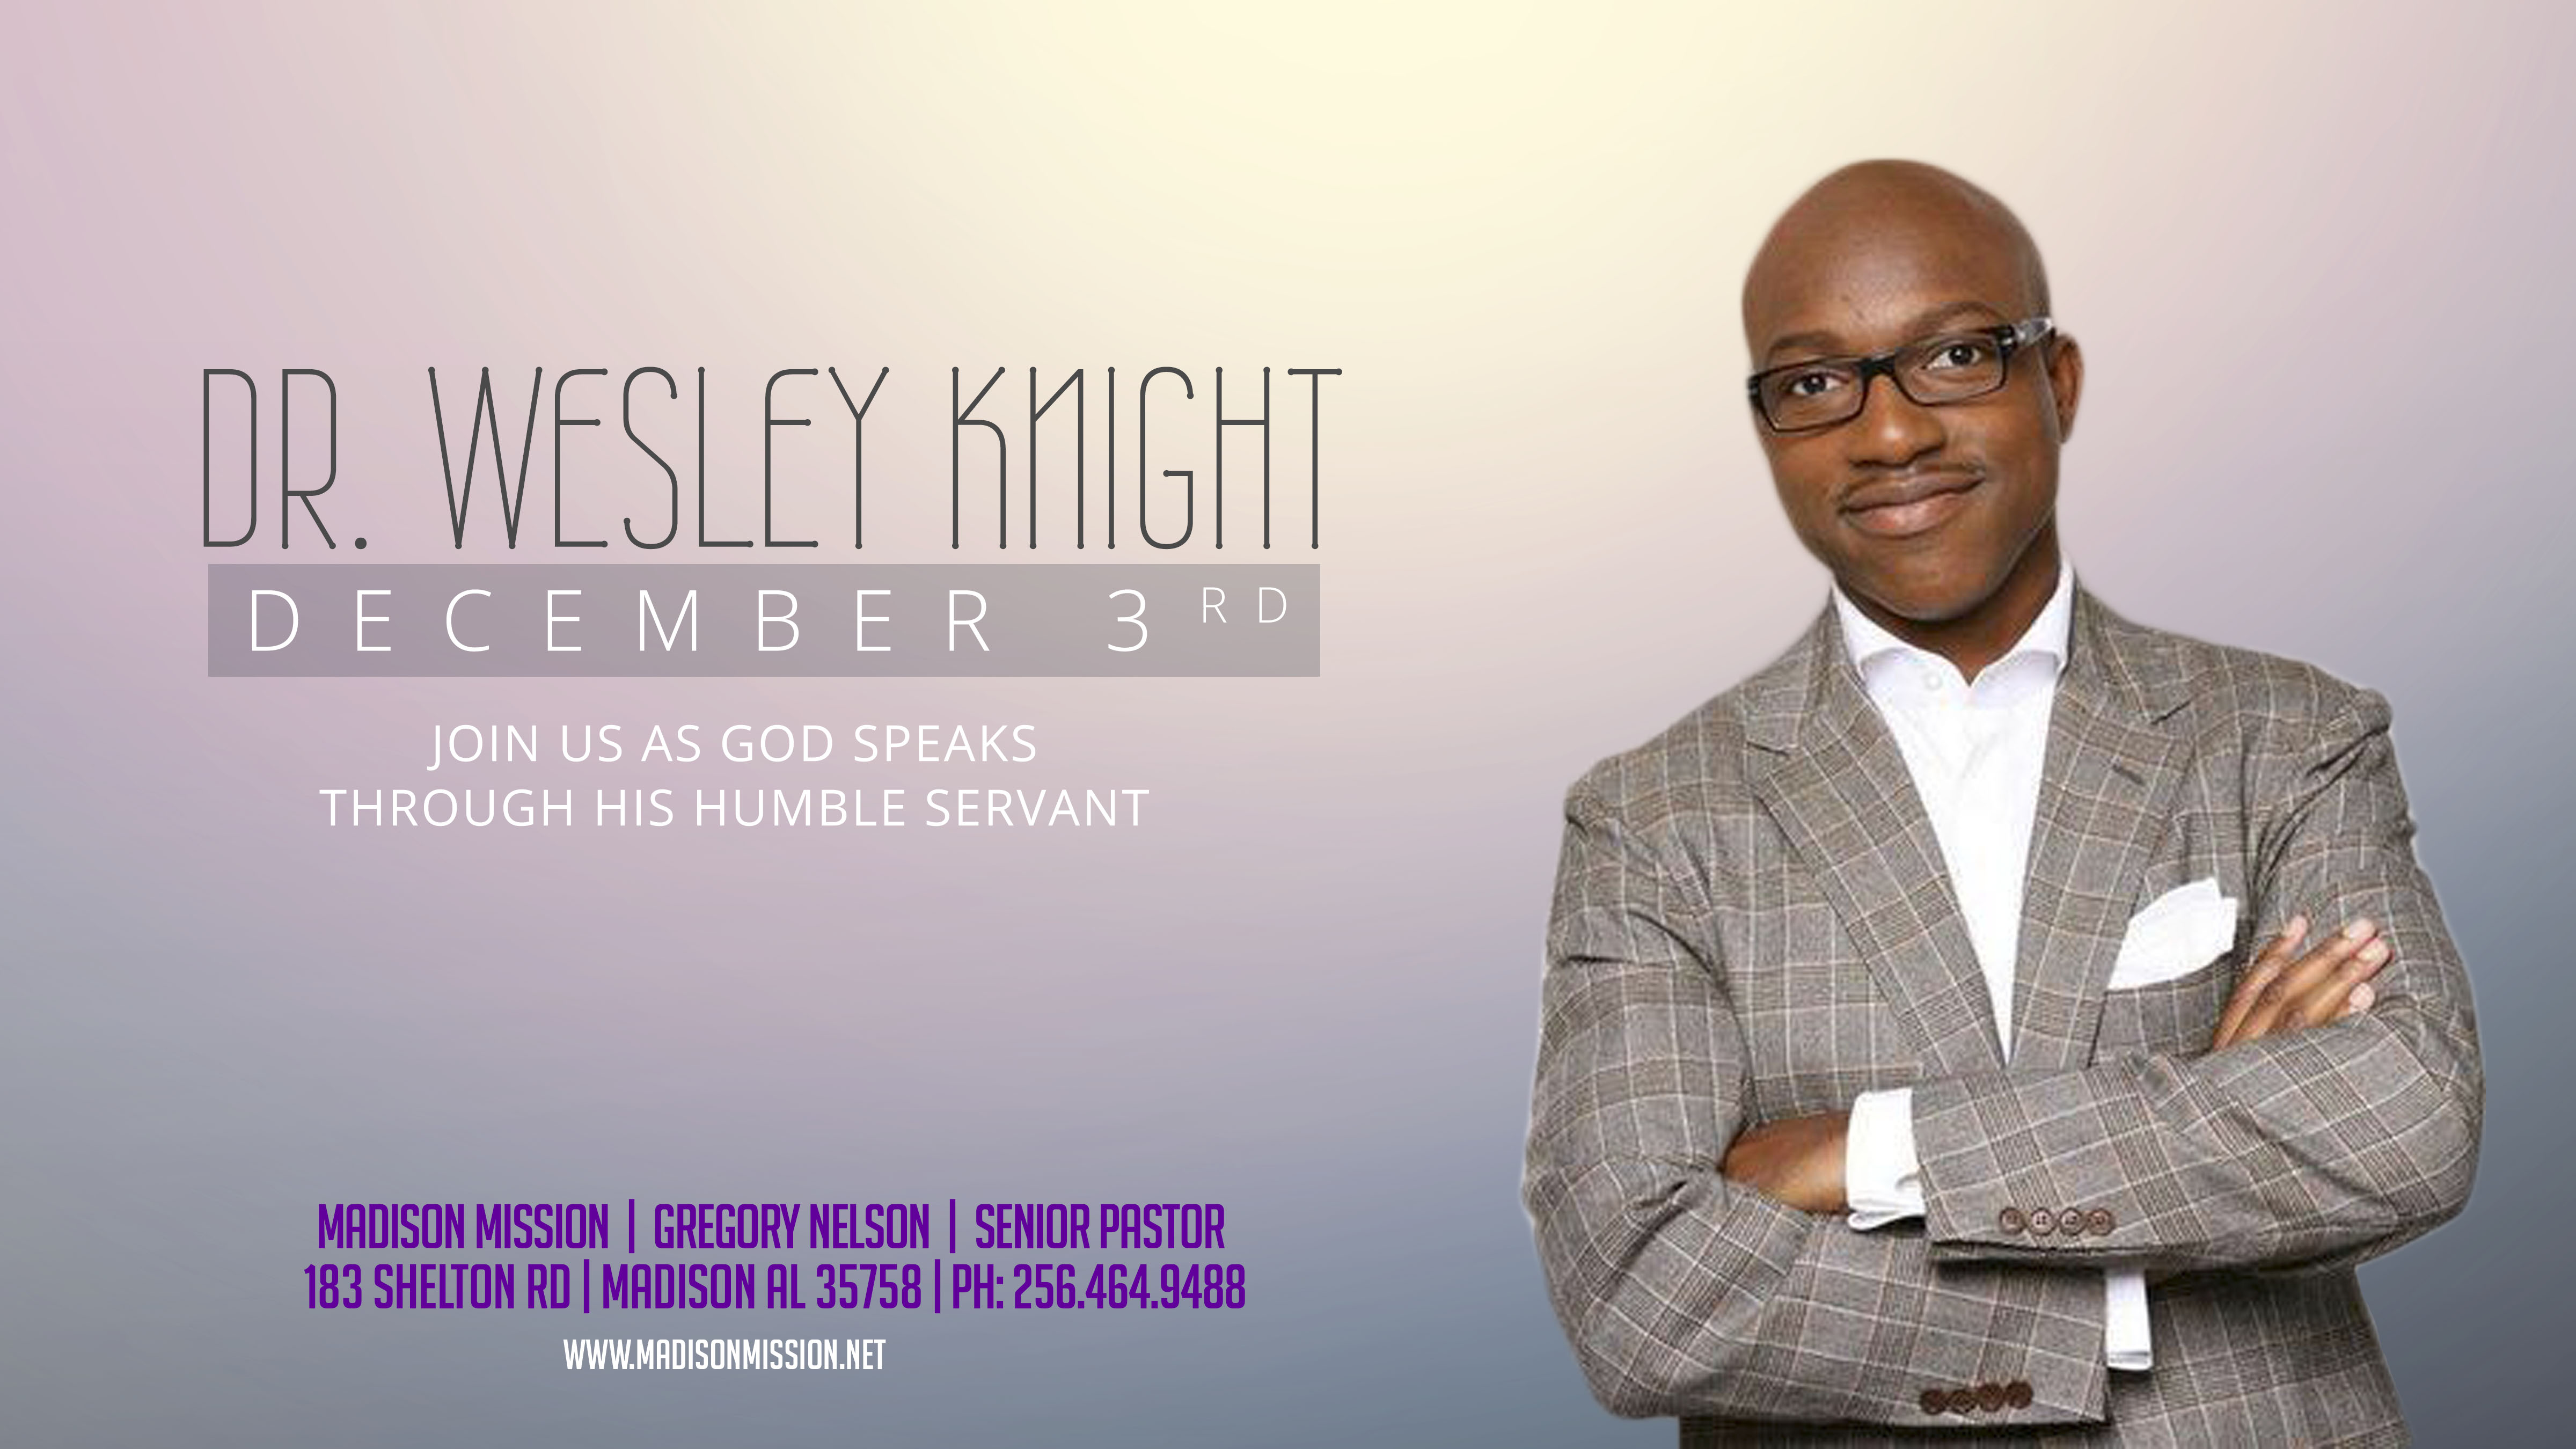 Dr. Wesley Knight Live Dec 3rd